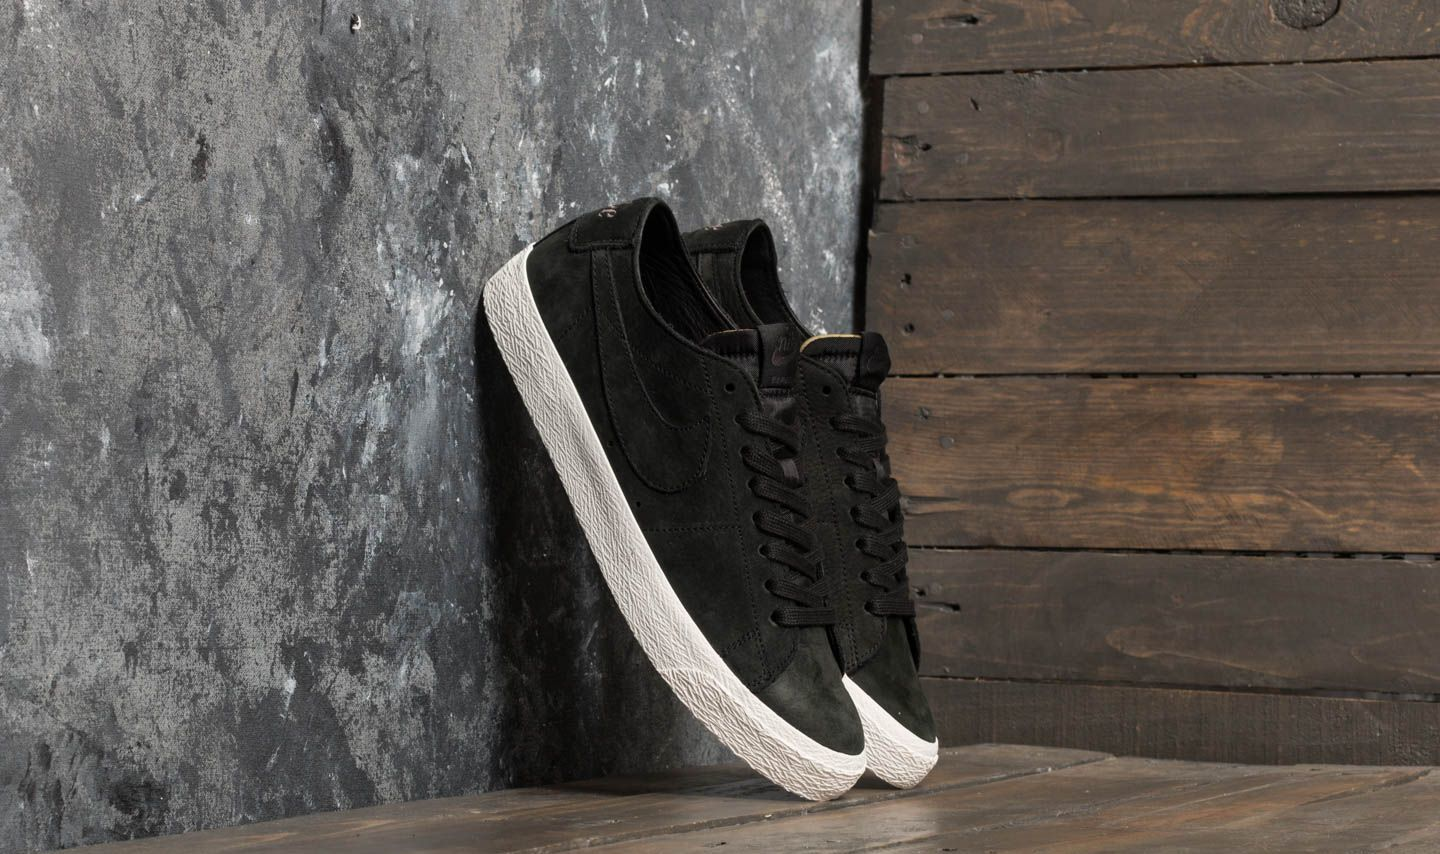 bfd85ae220d54 Nike SB Zoom Blazer Low Decon Black/ Black-Anthracite | Footshop